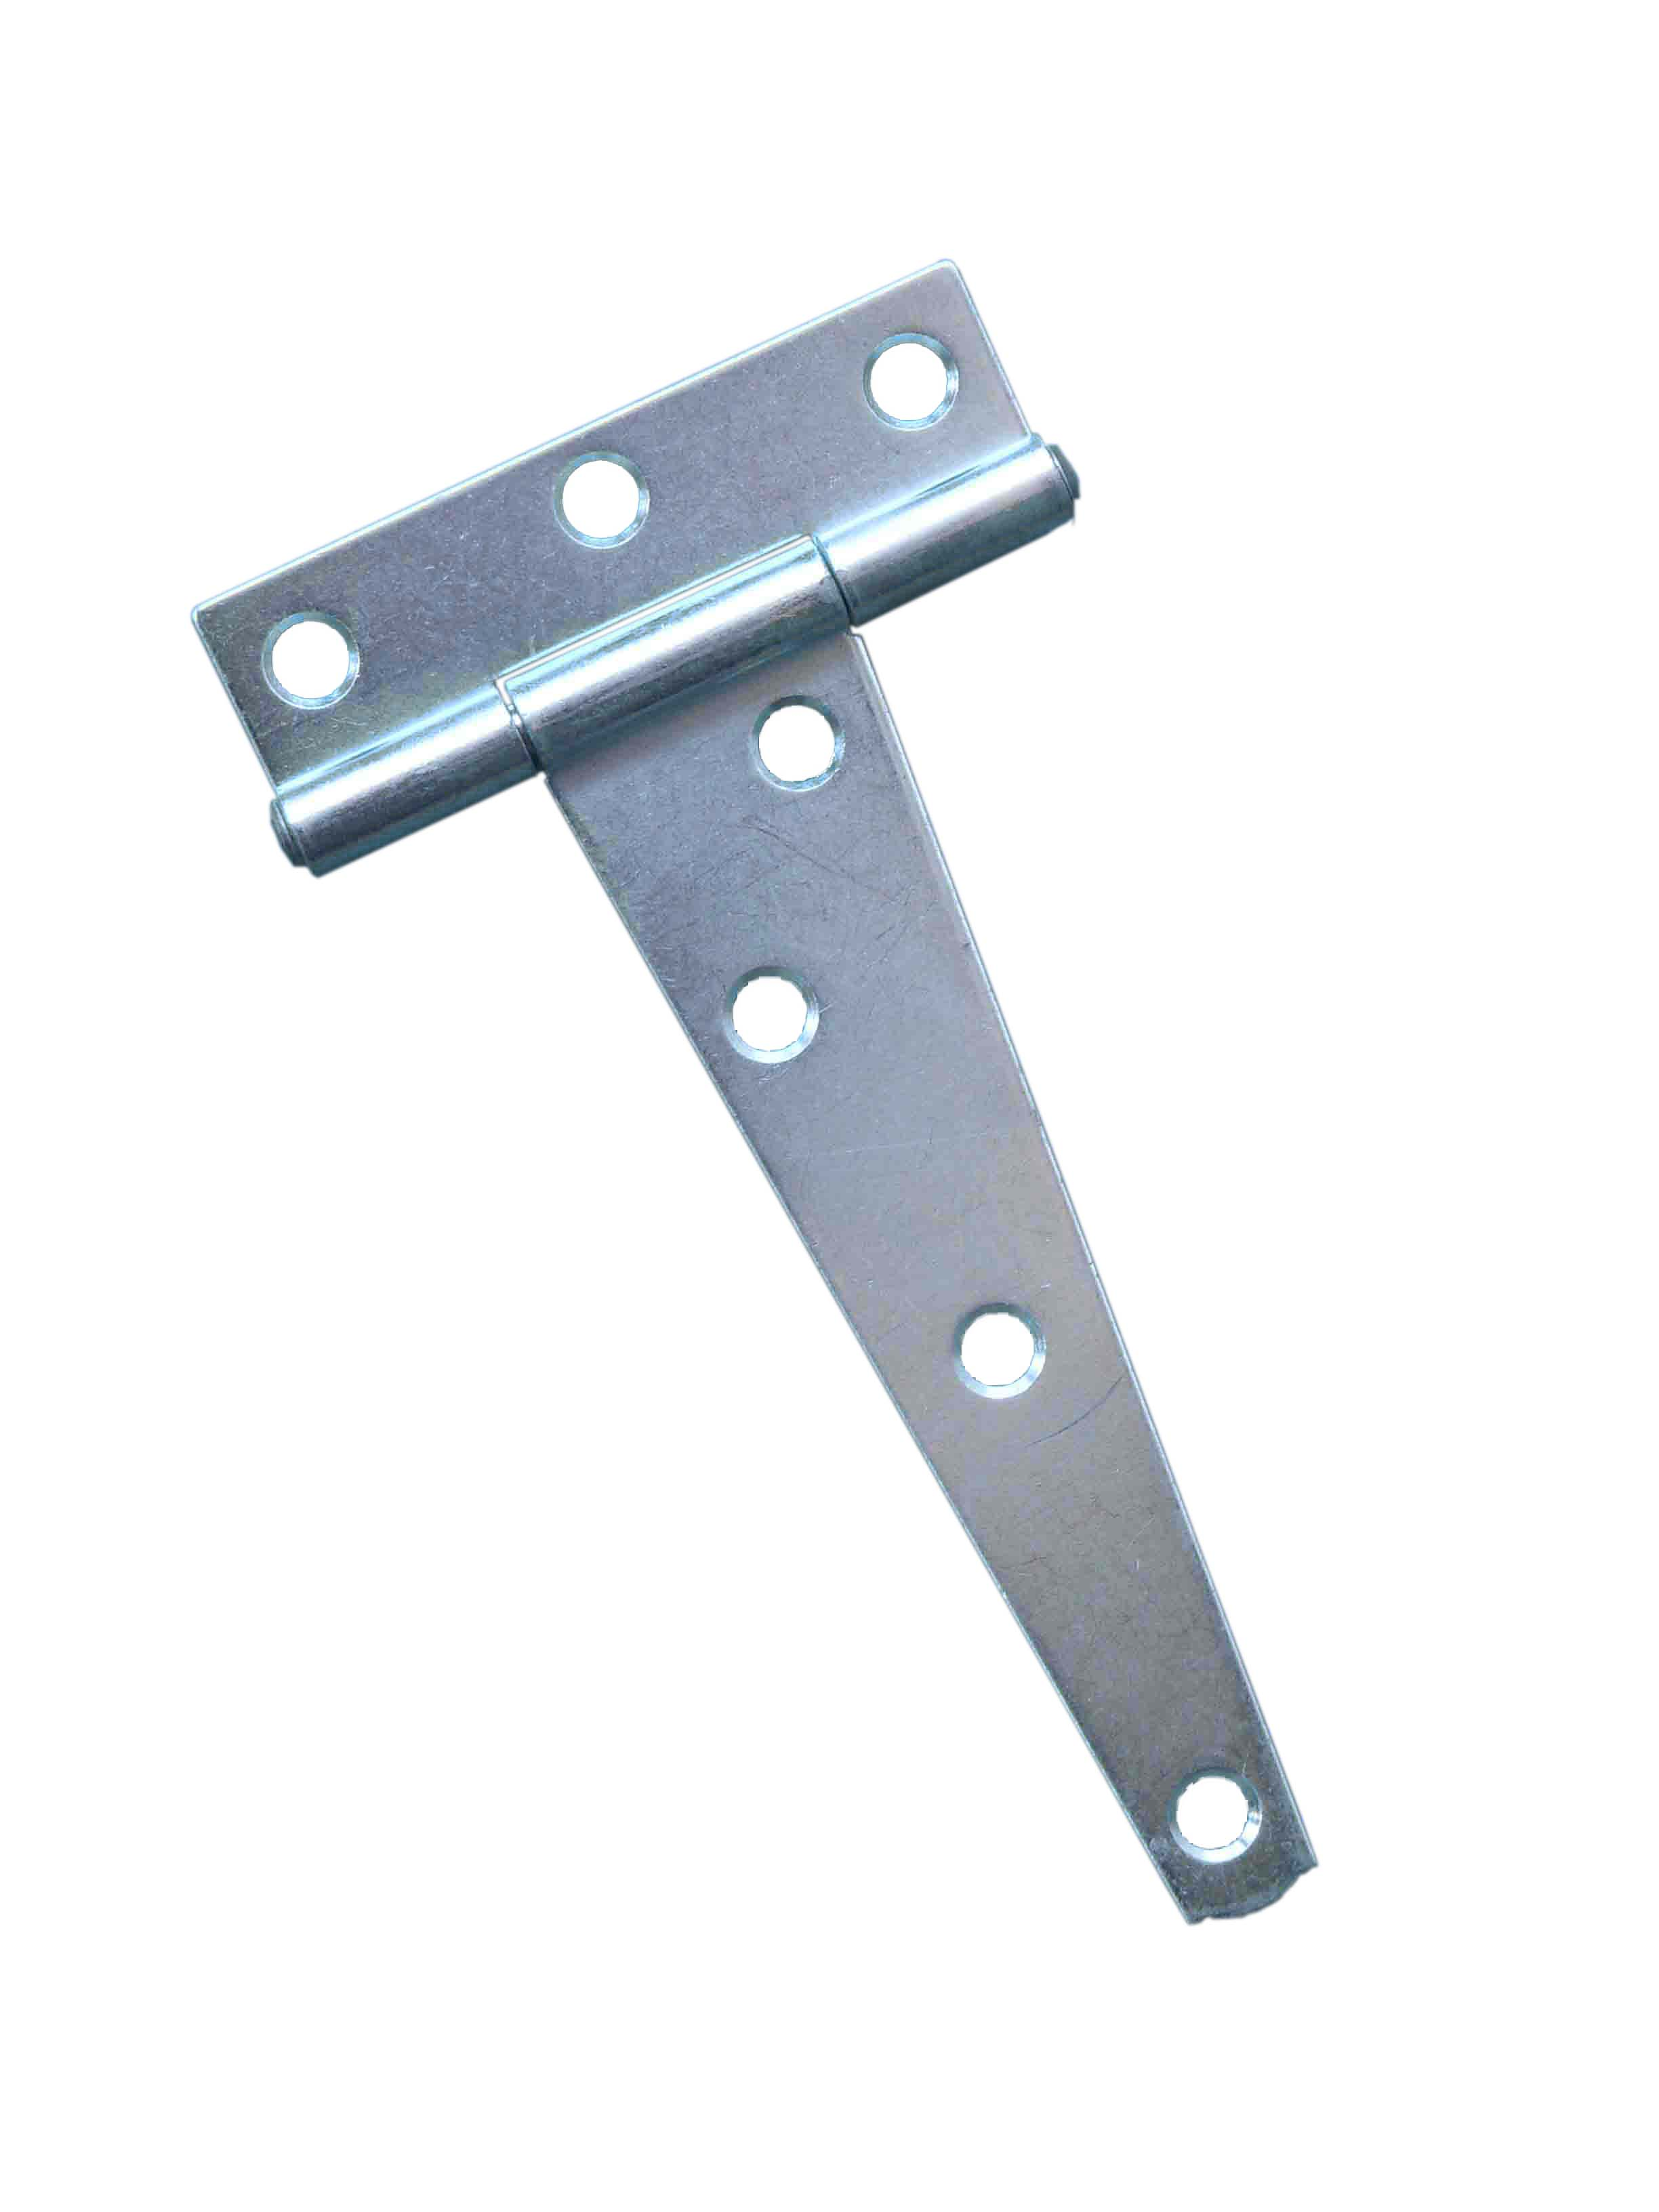 T type butt hinge